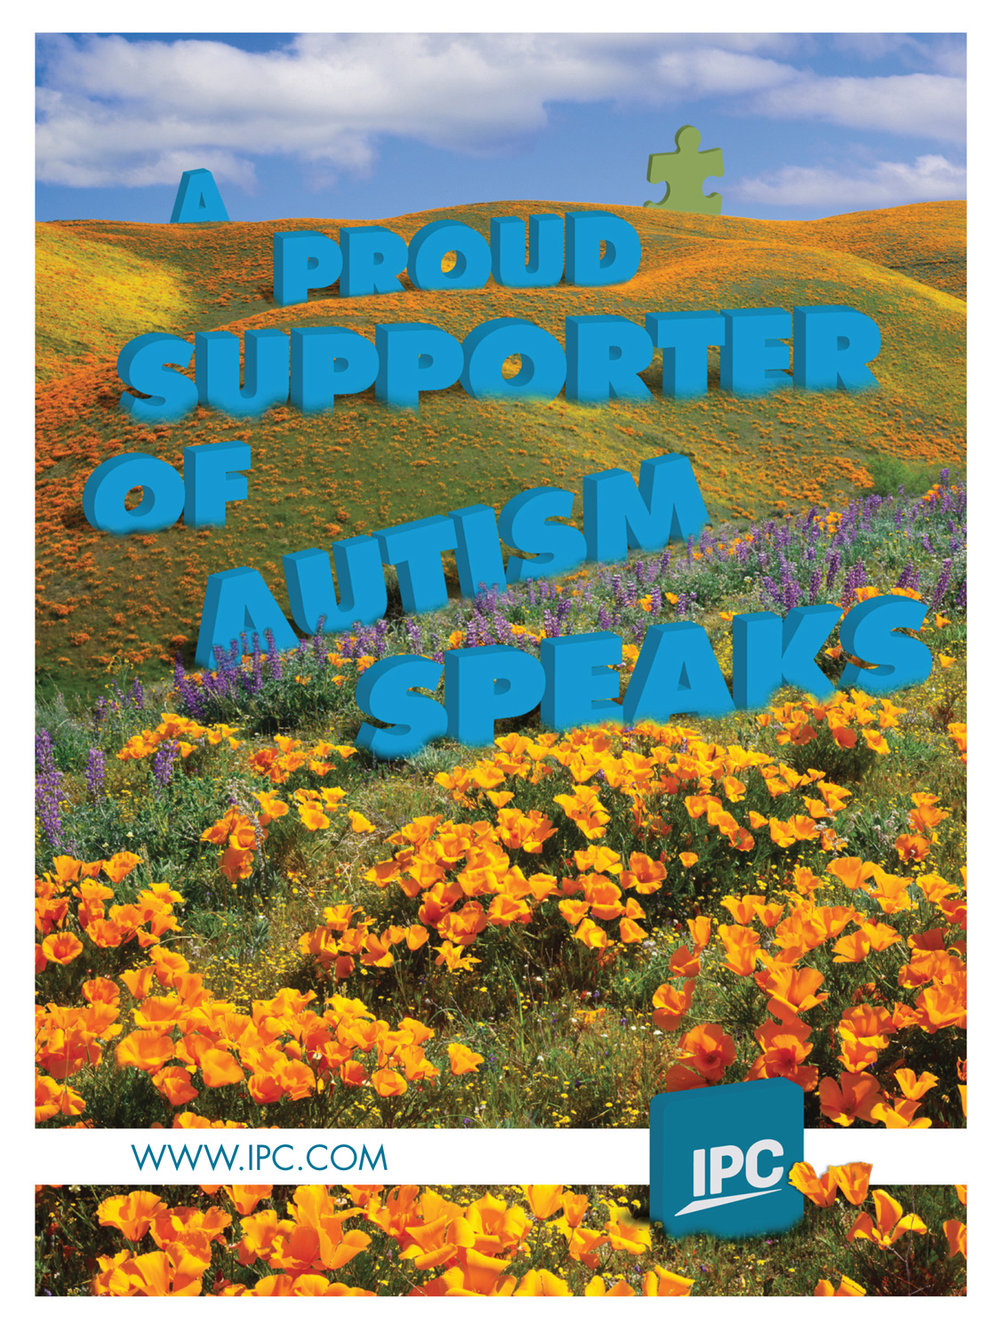 IPC_Autism Speaks Ad_2013_LR.jpg